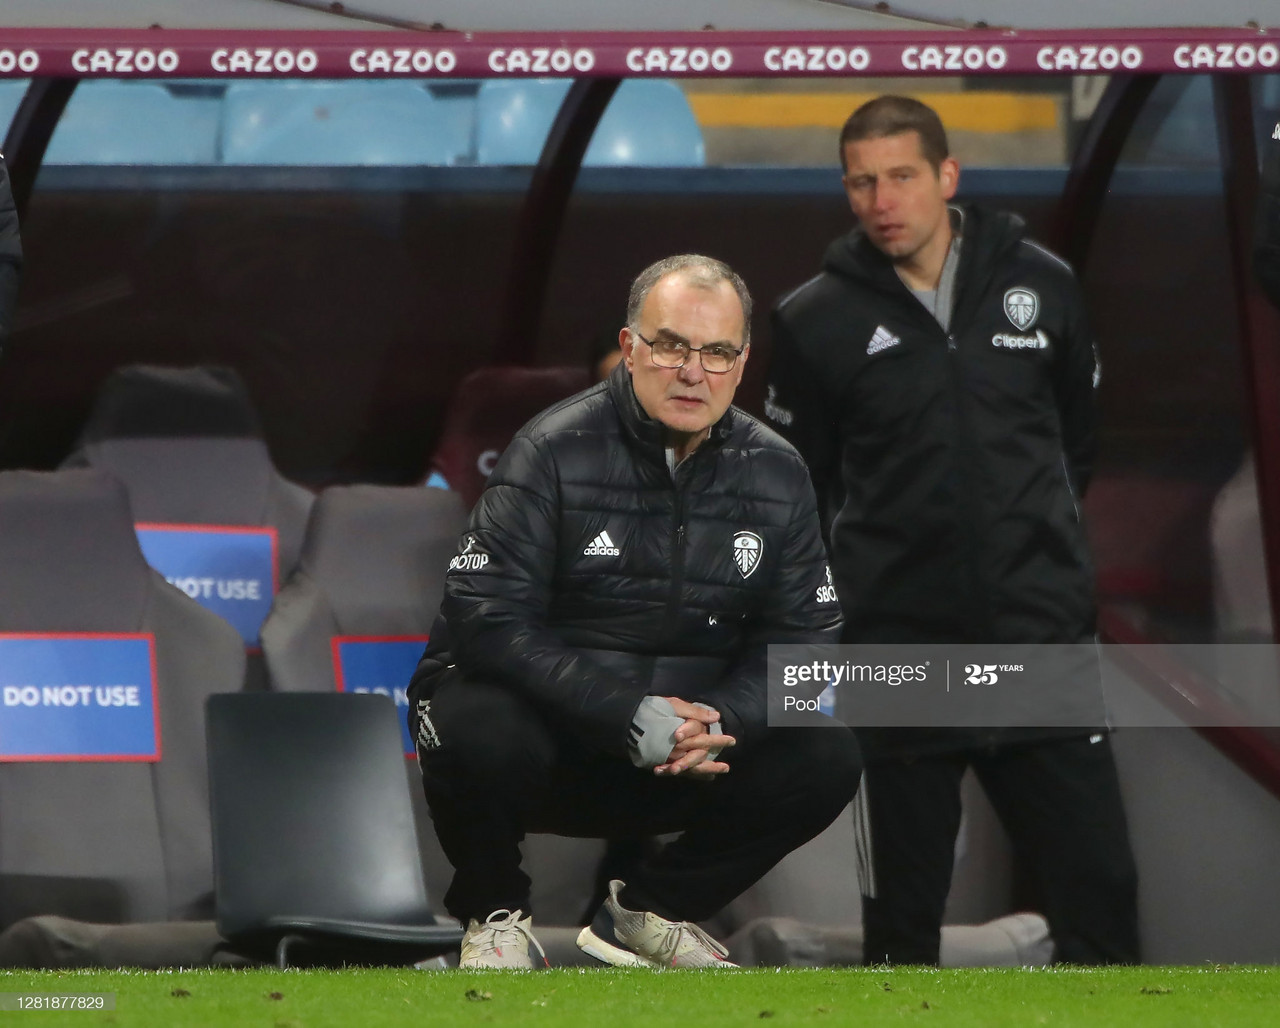 The five key quotes from Marcelo Bielsa's pre-Crawley press conference